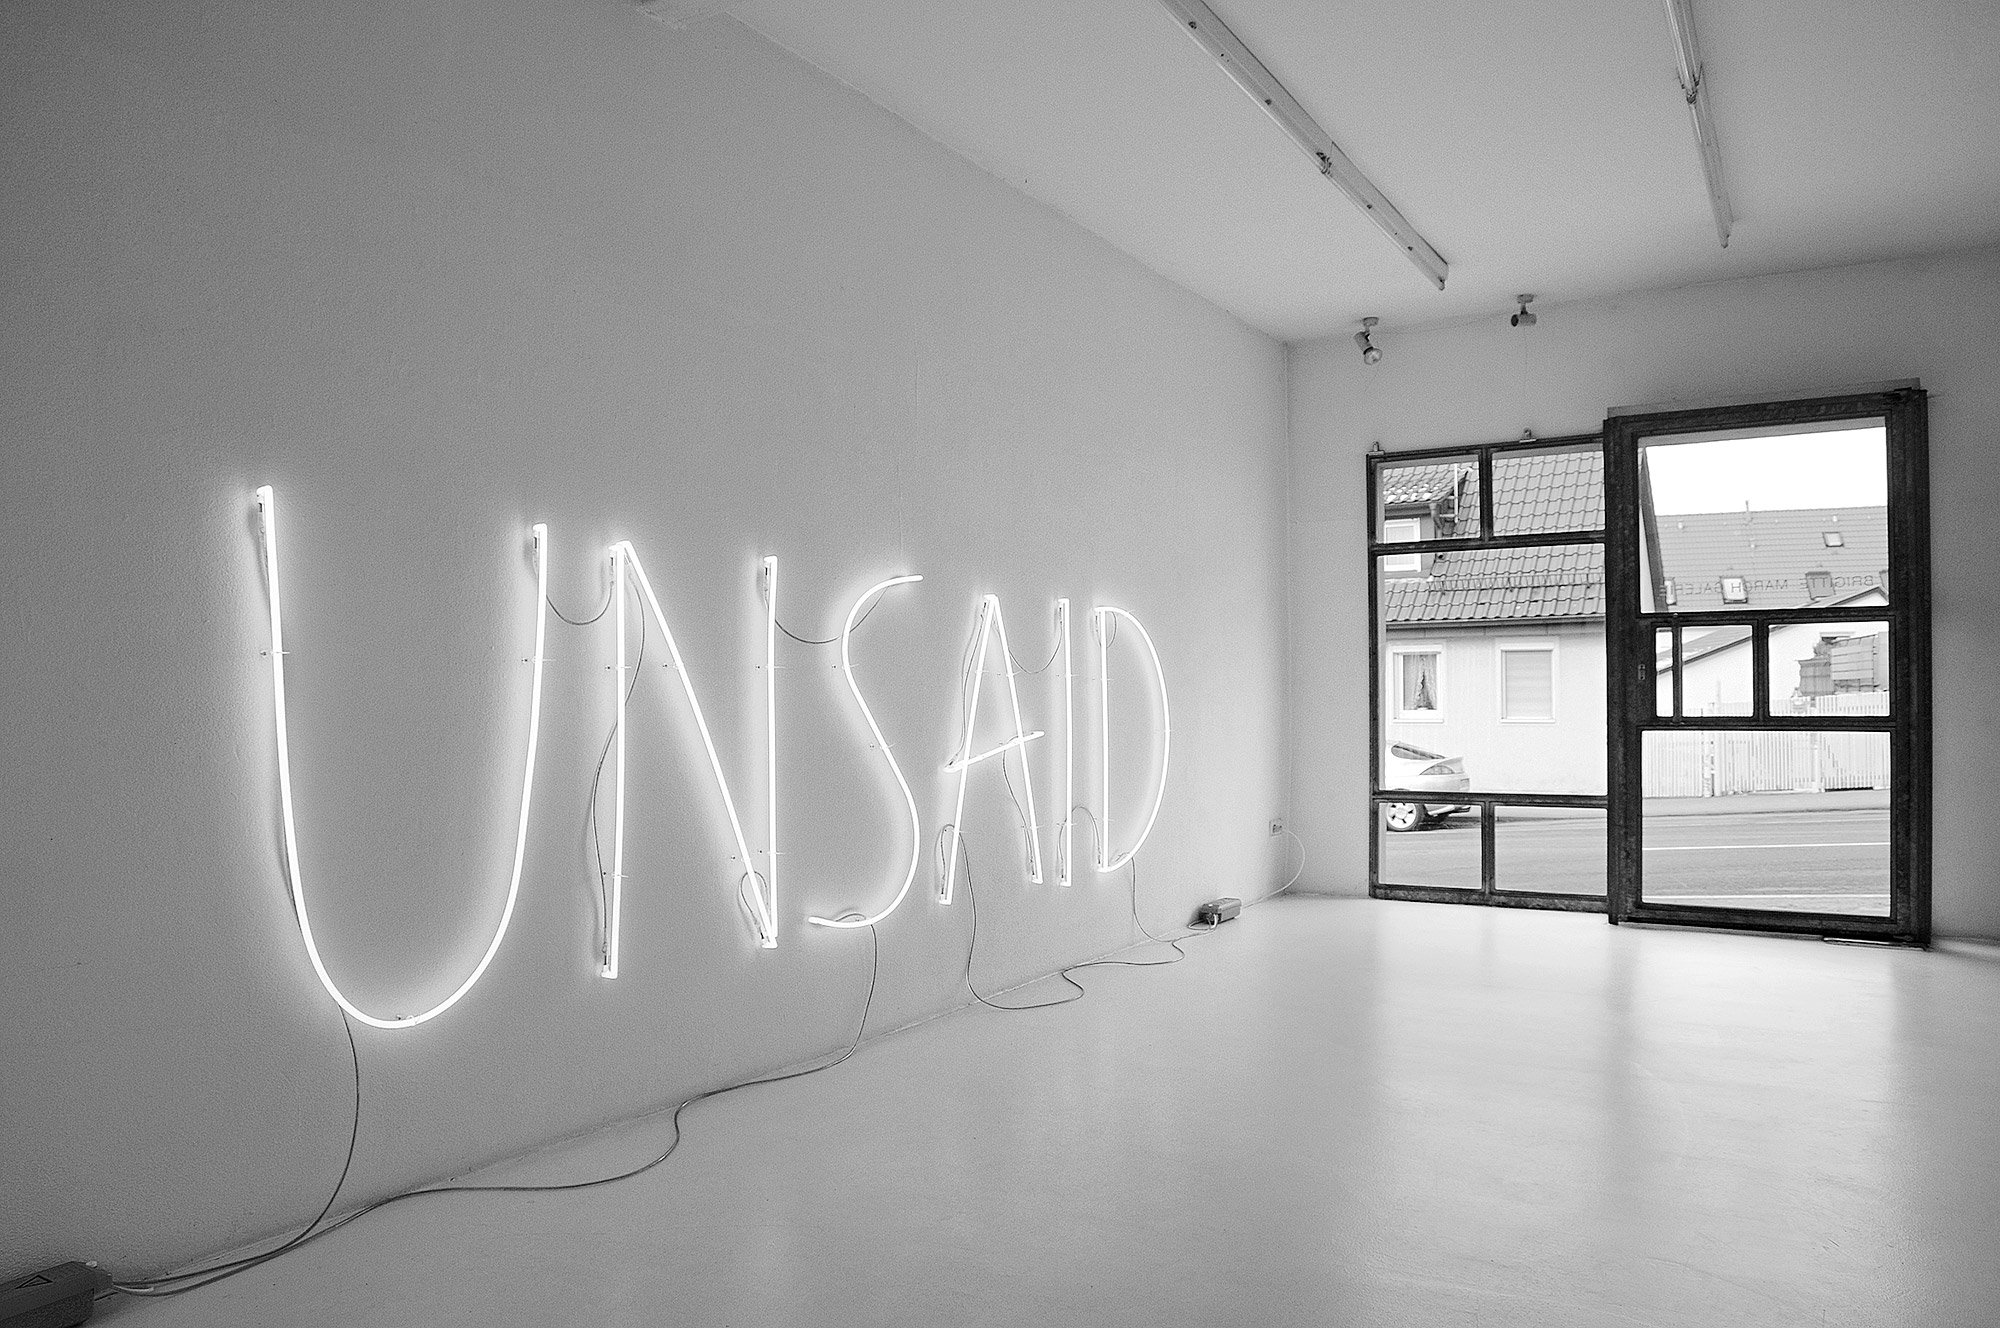 Famed, Untitled [Unsaid], 2010